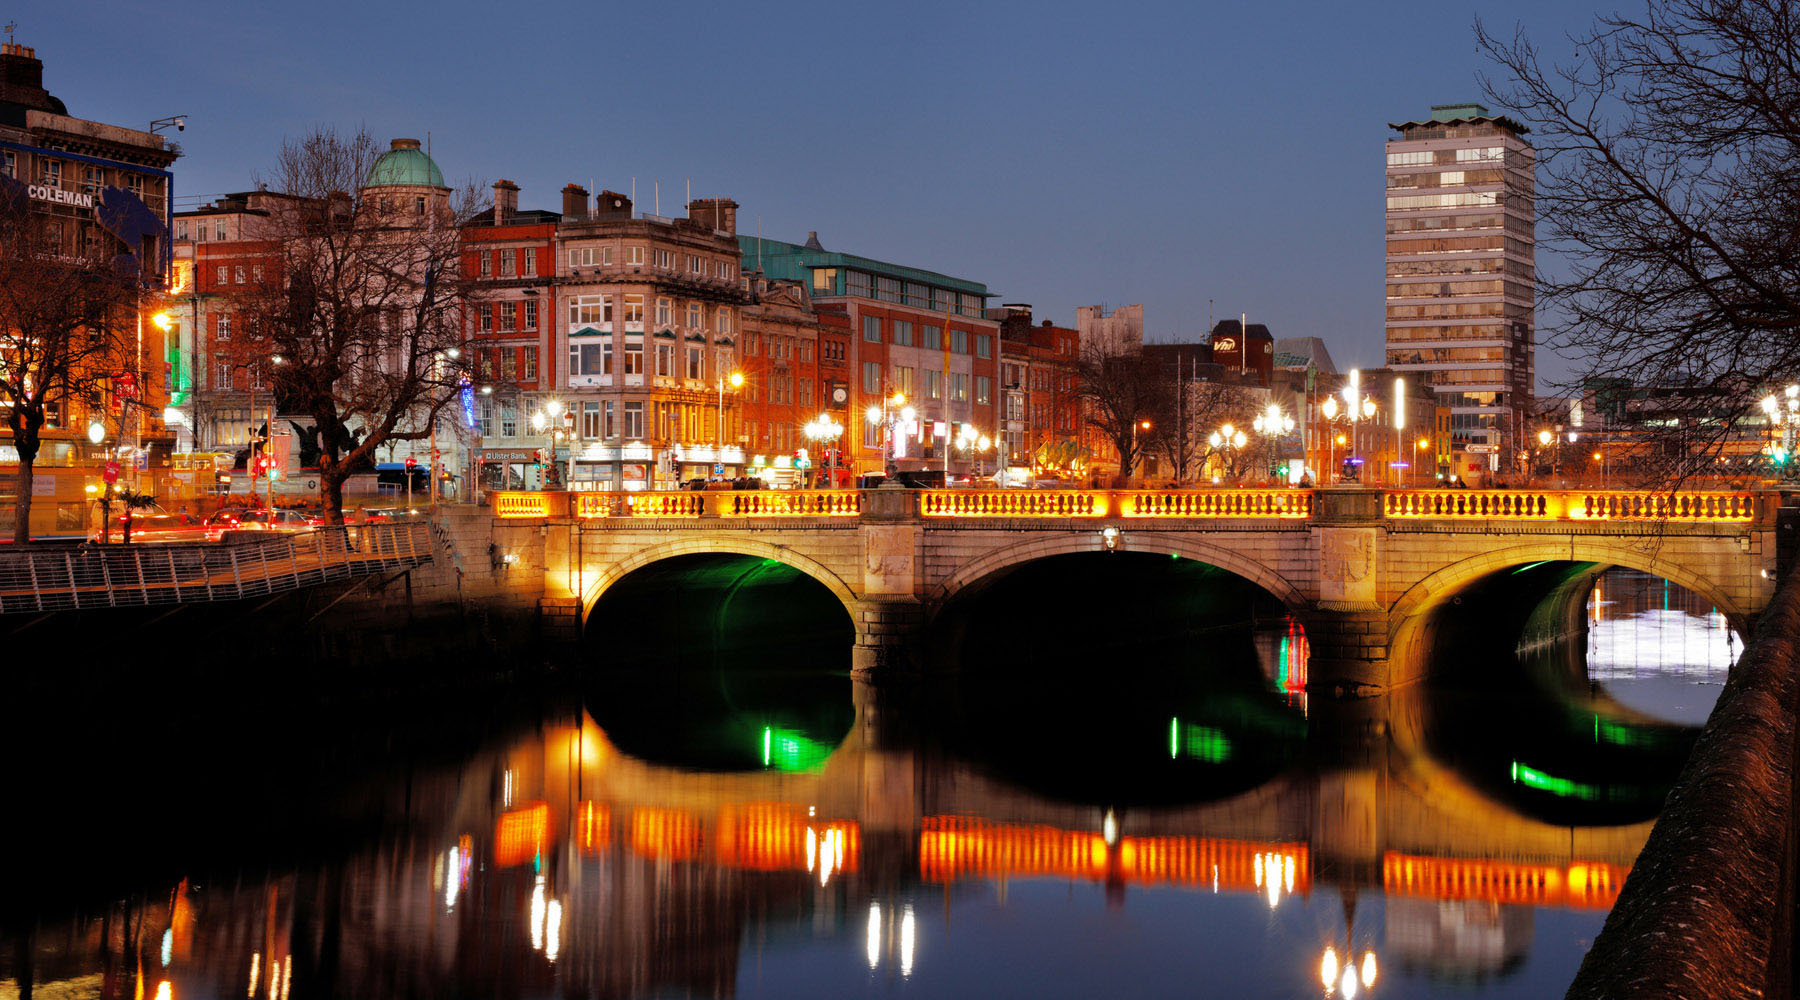 The O'Connell Bridge in Dublin, Ireland, at night.